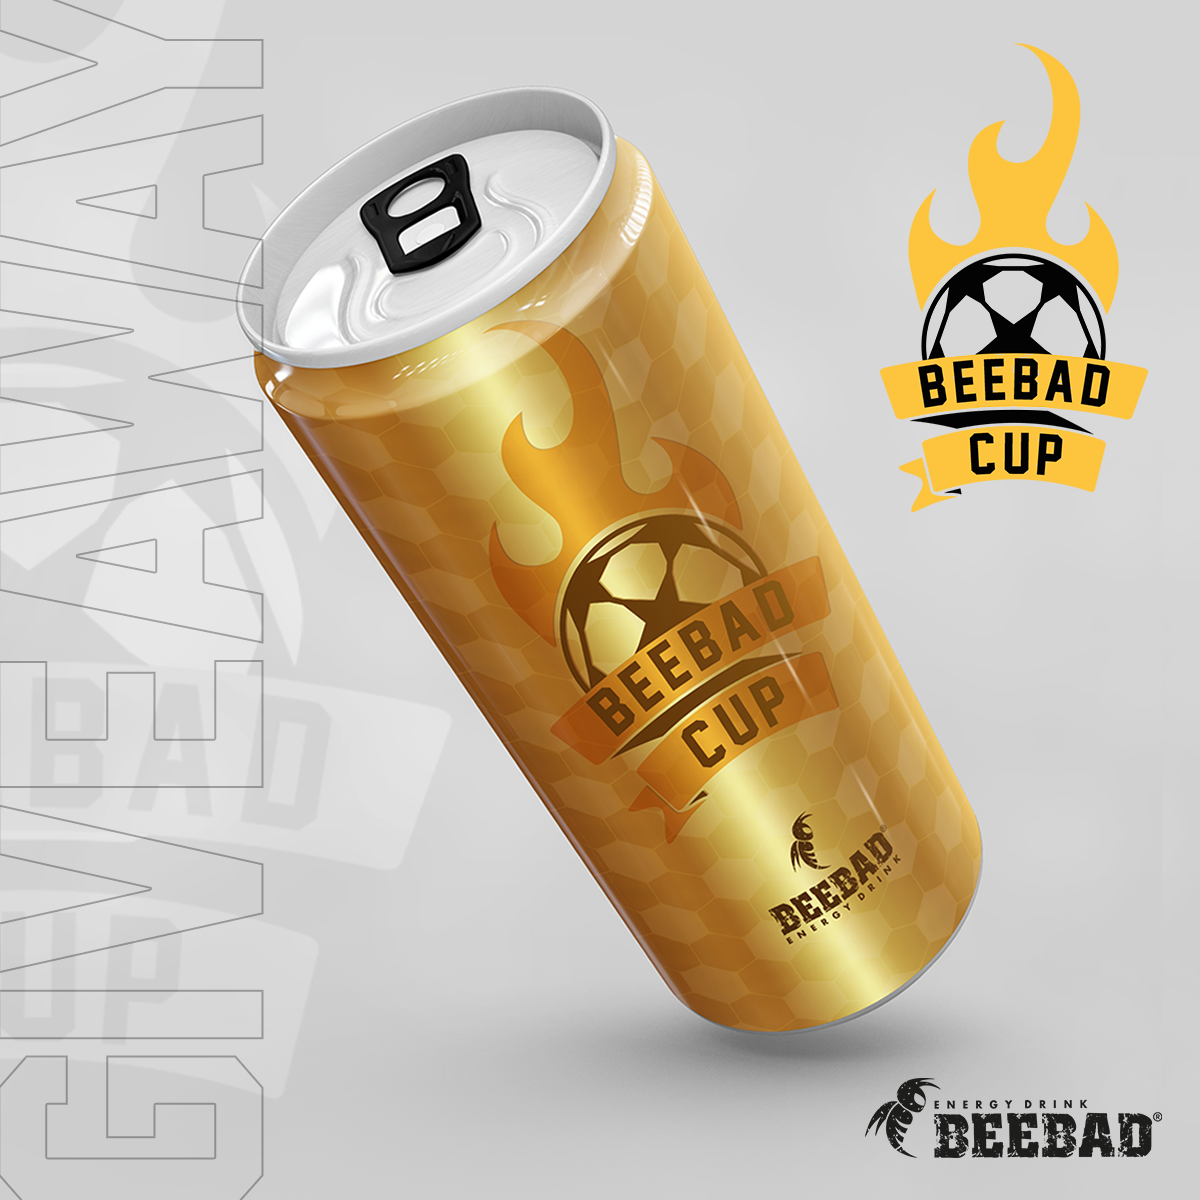 Beebad Cup Mkers